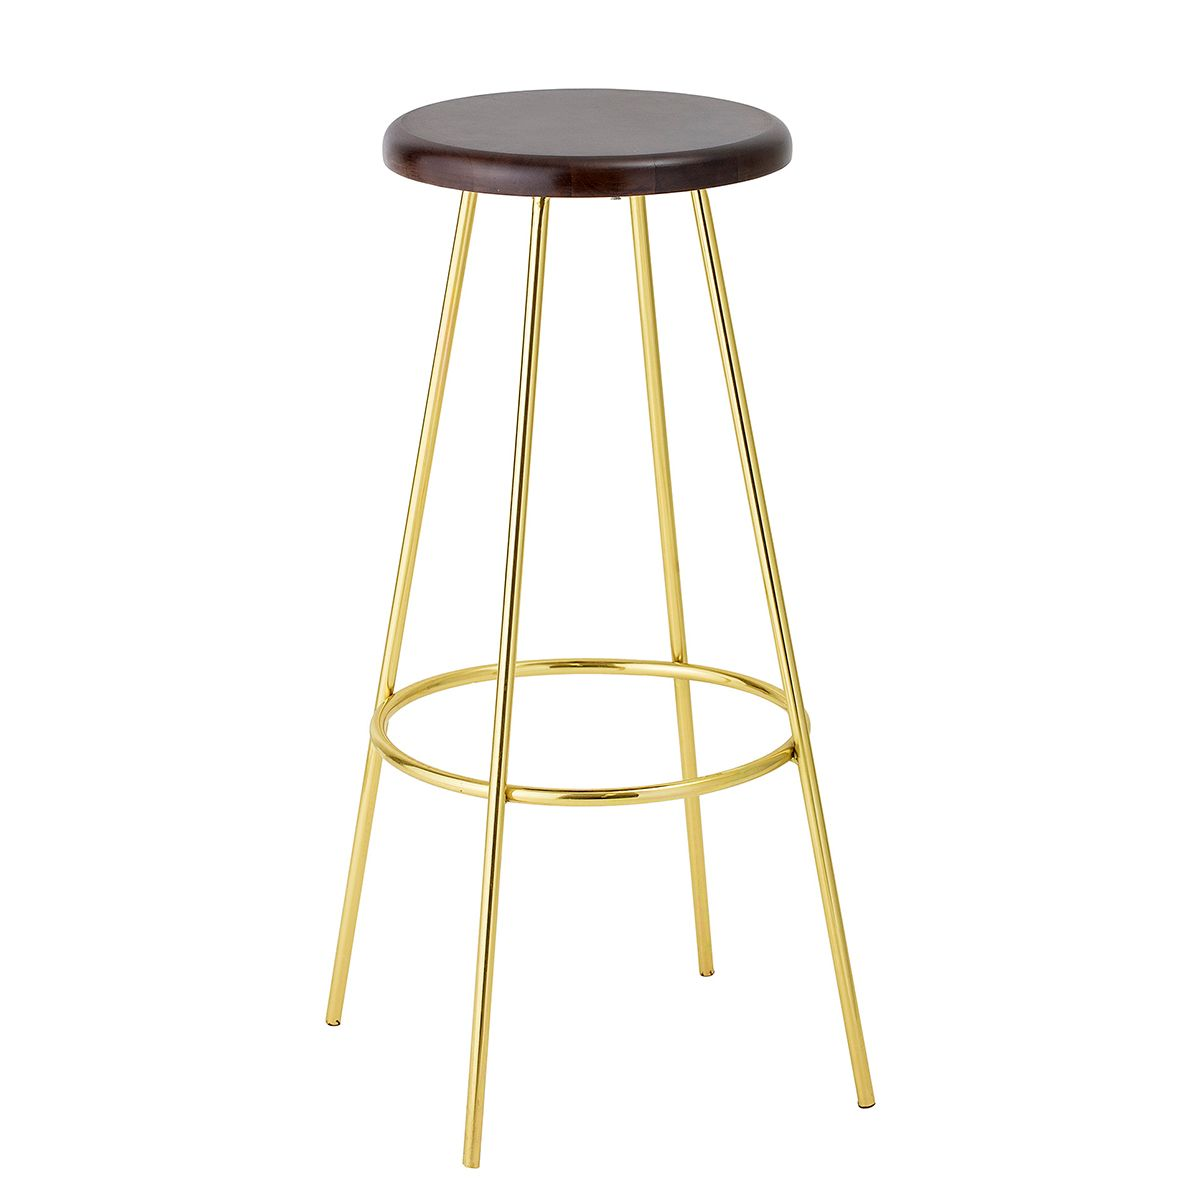 tabouret de bar en m tal couleur or assise noire bloomingville decoclico. Black Bedroom Furniture Sets. Home Design Ideas